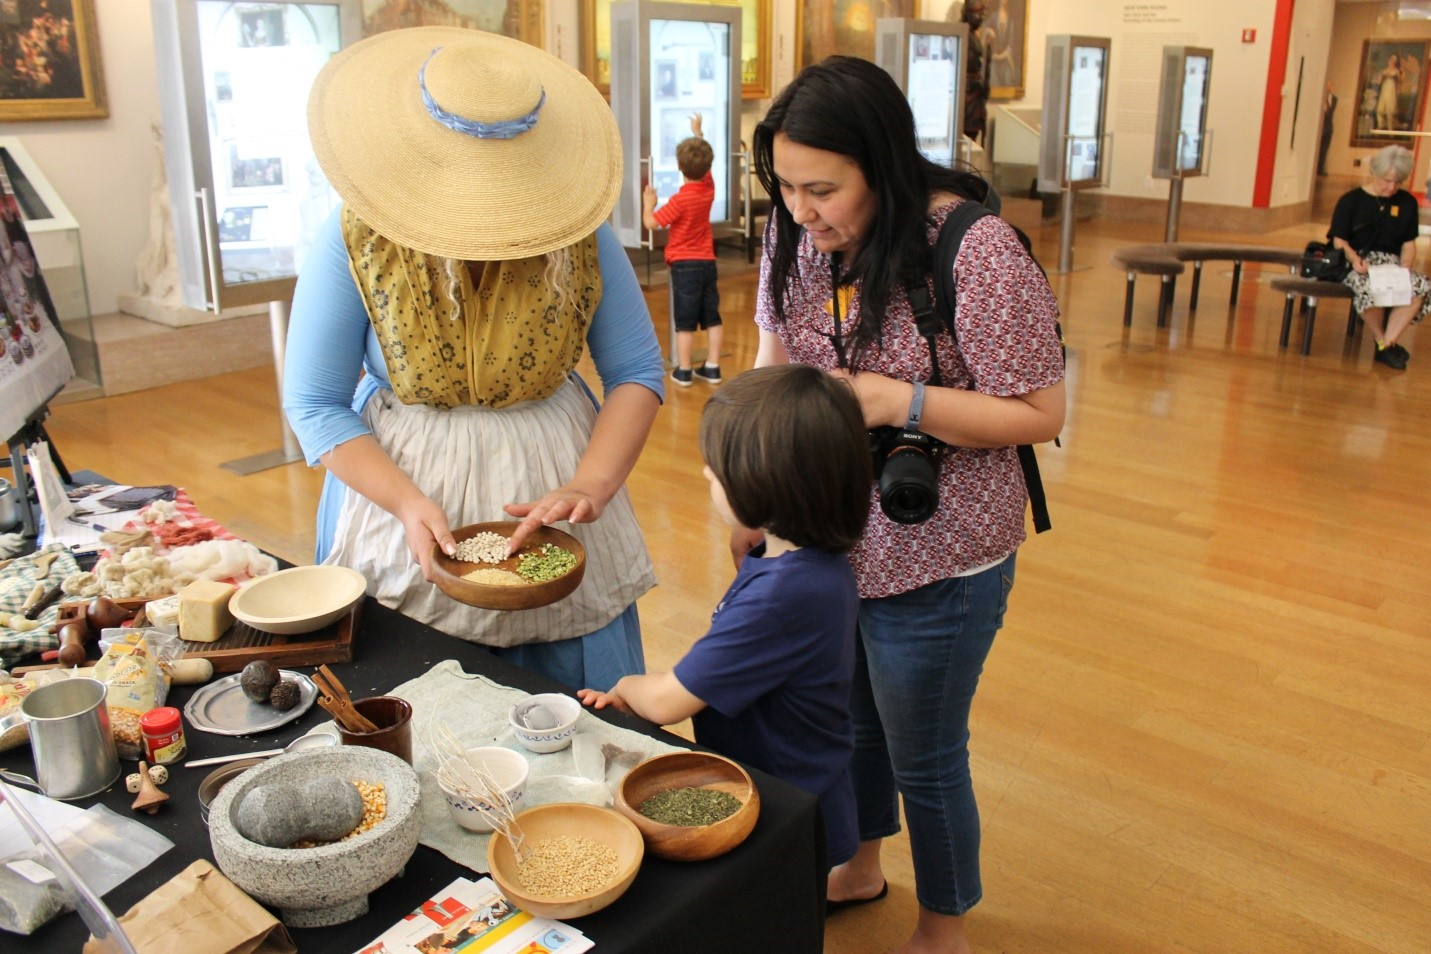 Under the shade of her hat, Dakota prepared 18th century cooking ingredients over Memorial Day Weekend.